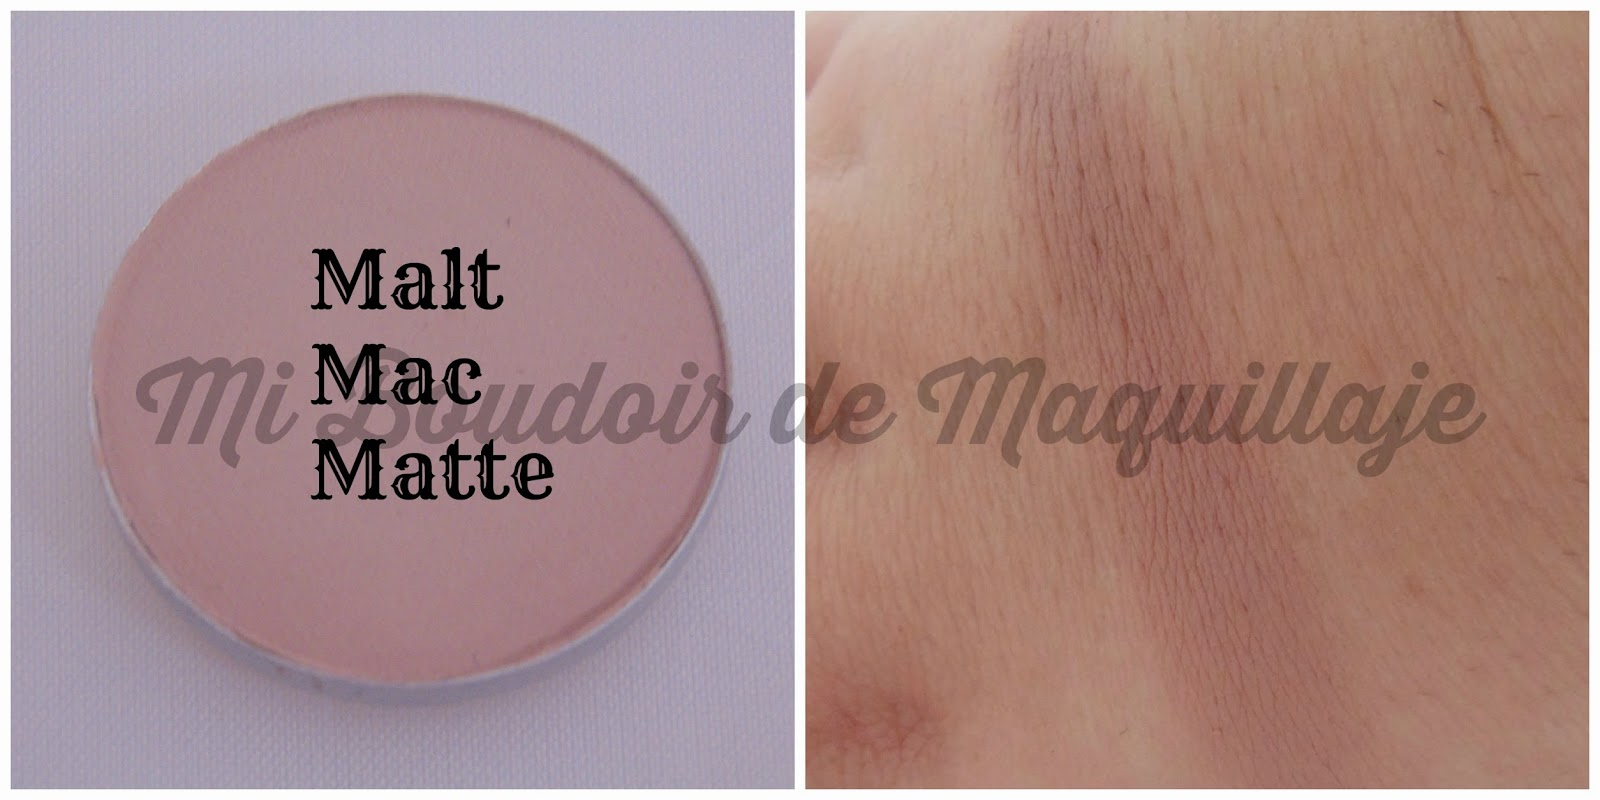 mac malt dupe - photo #11